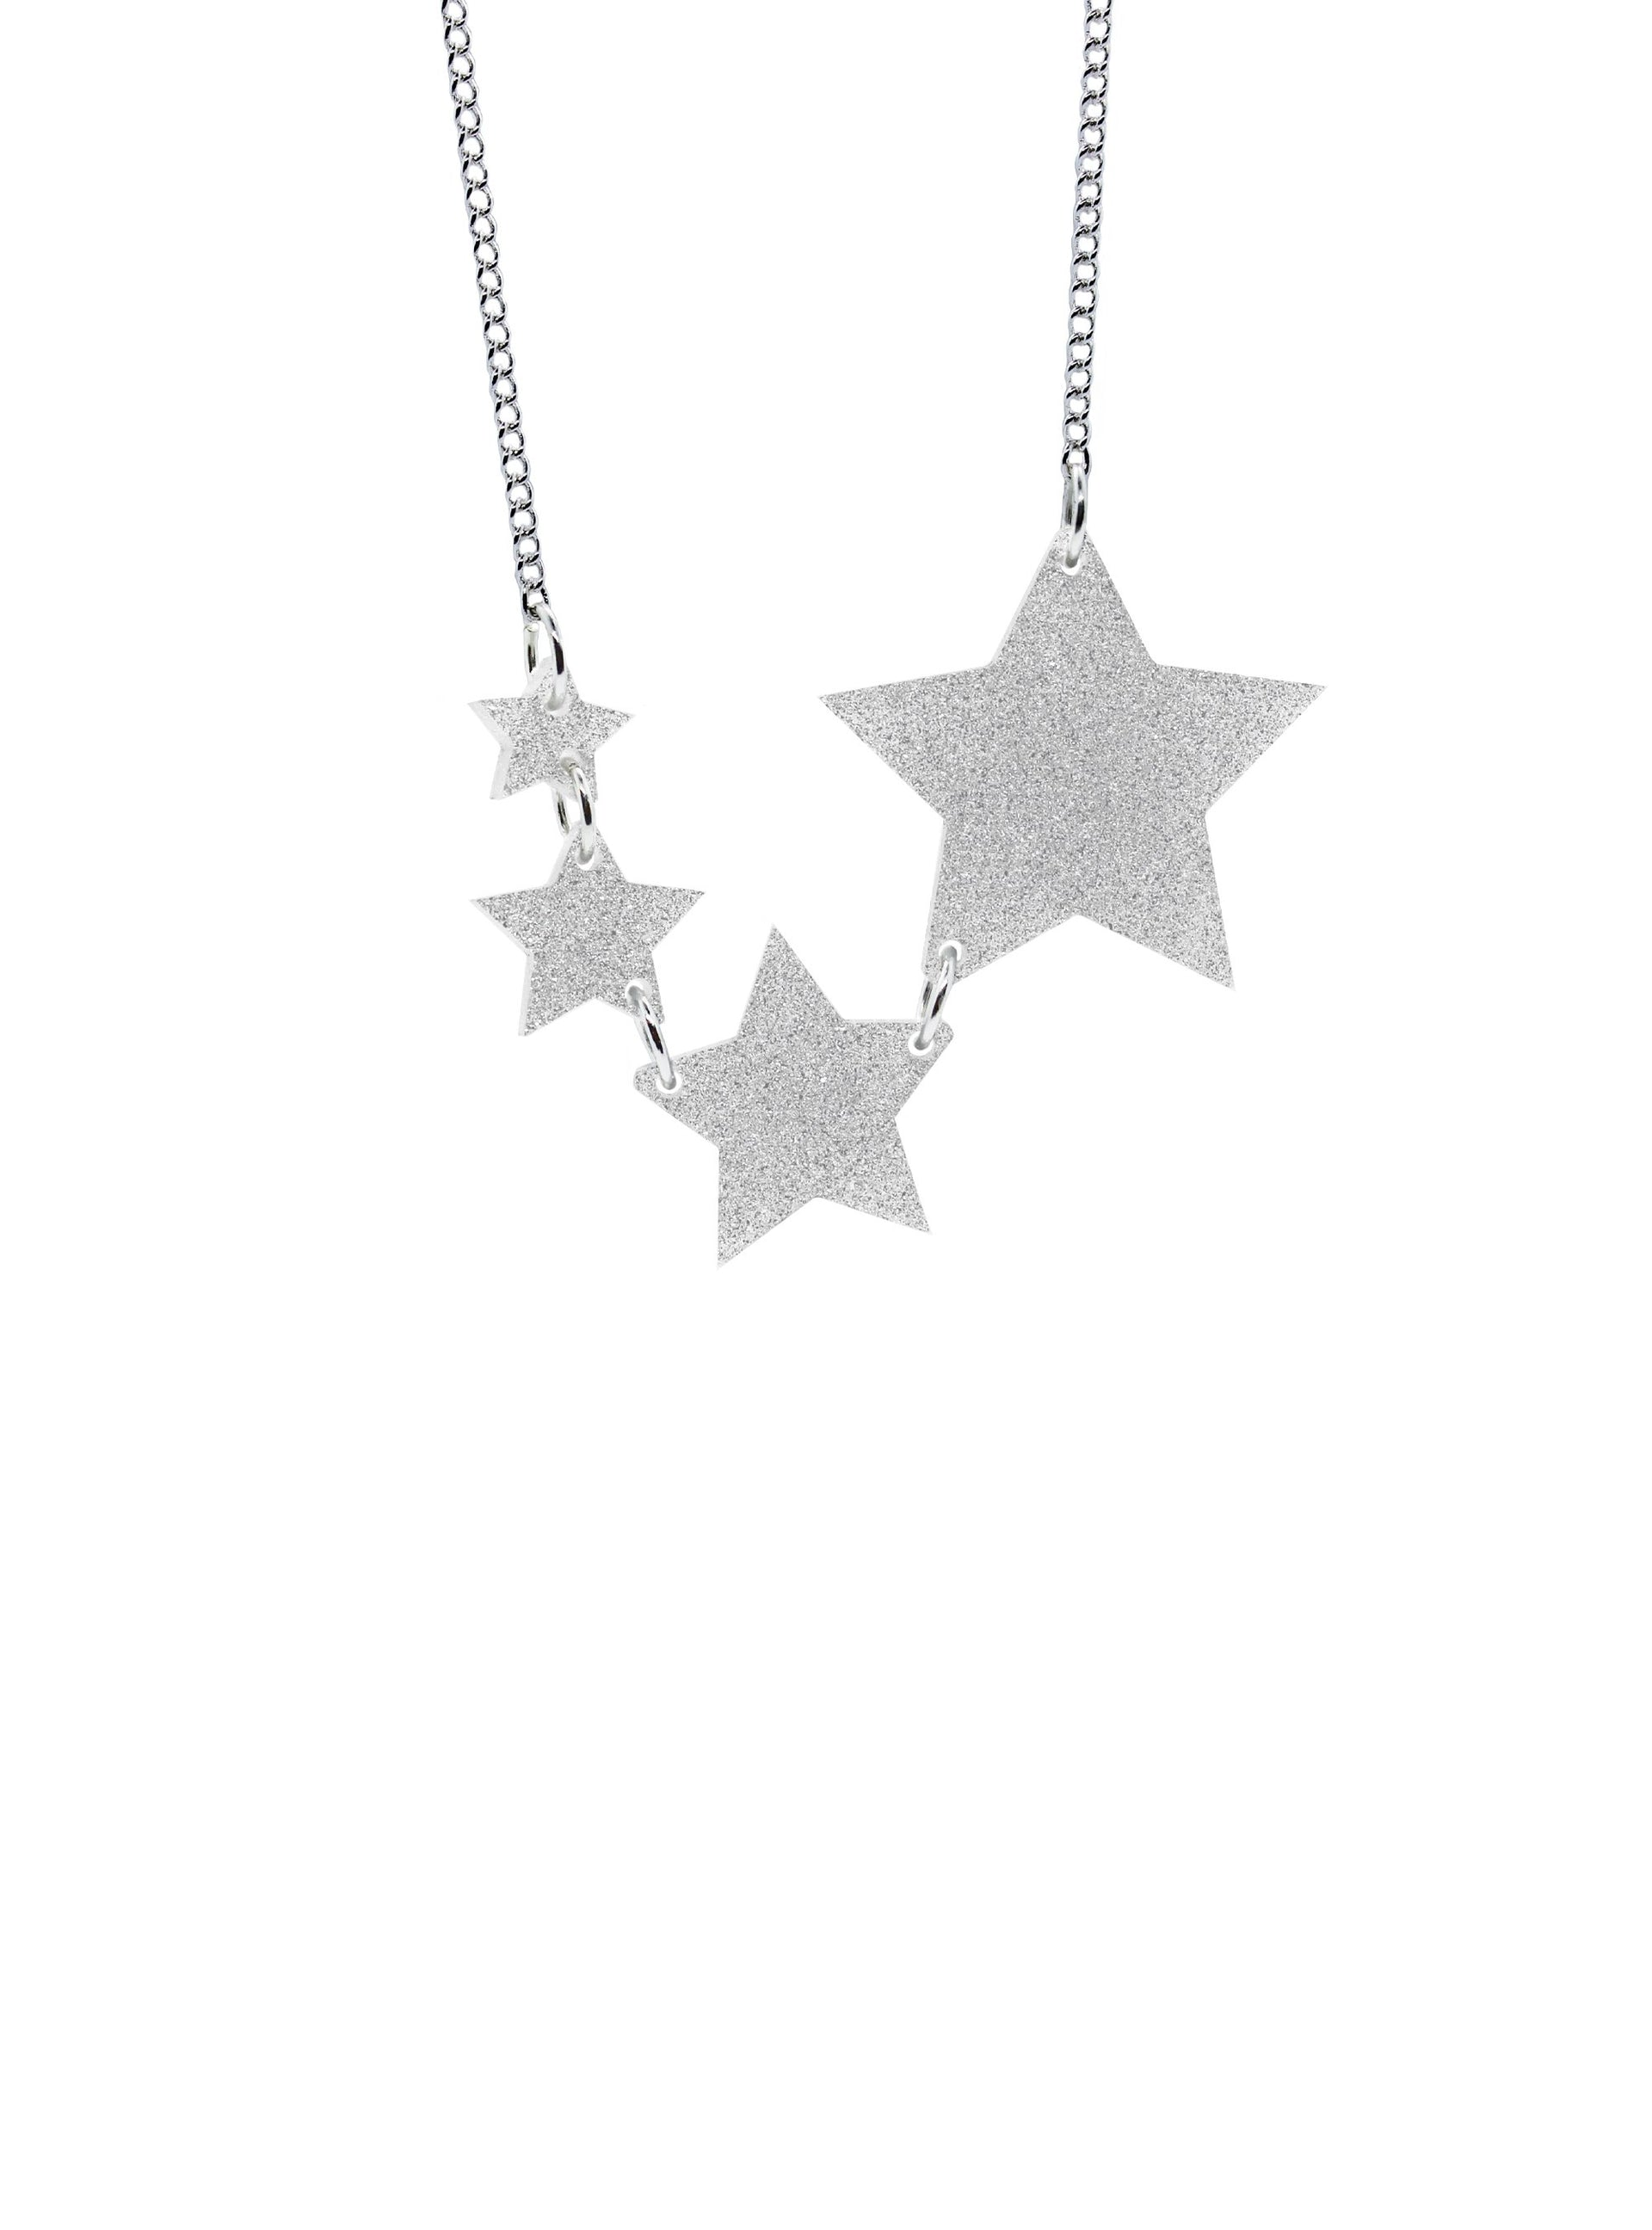 Shooting Star Necklace - Silver Dust